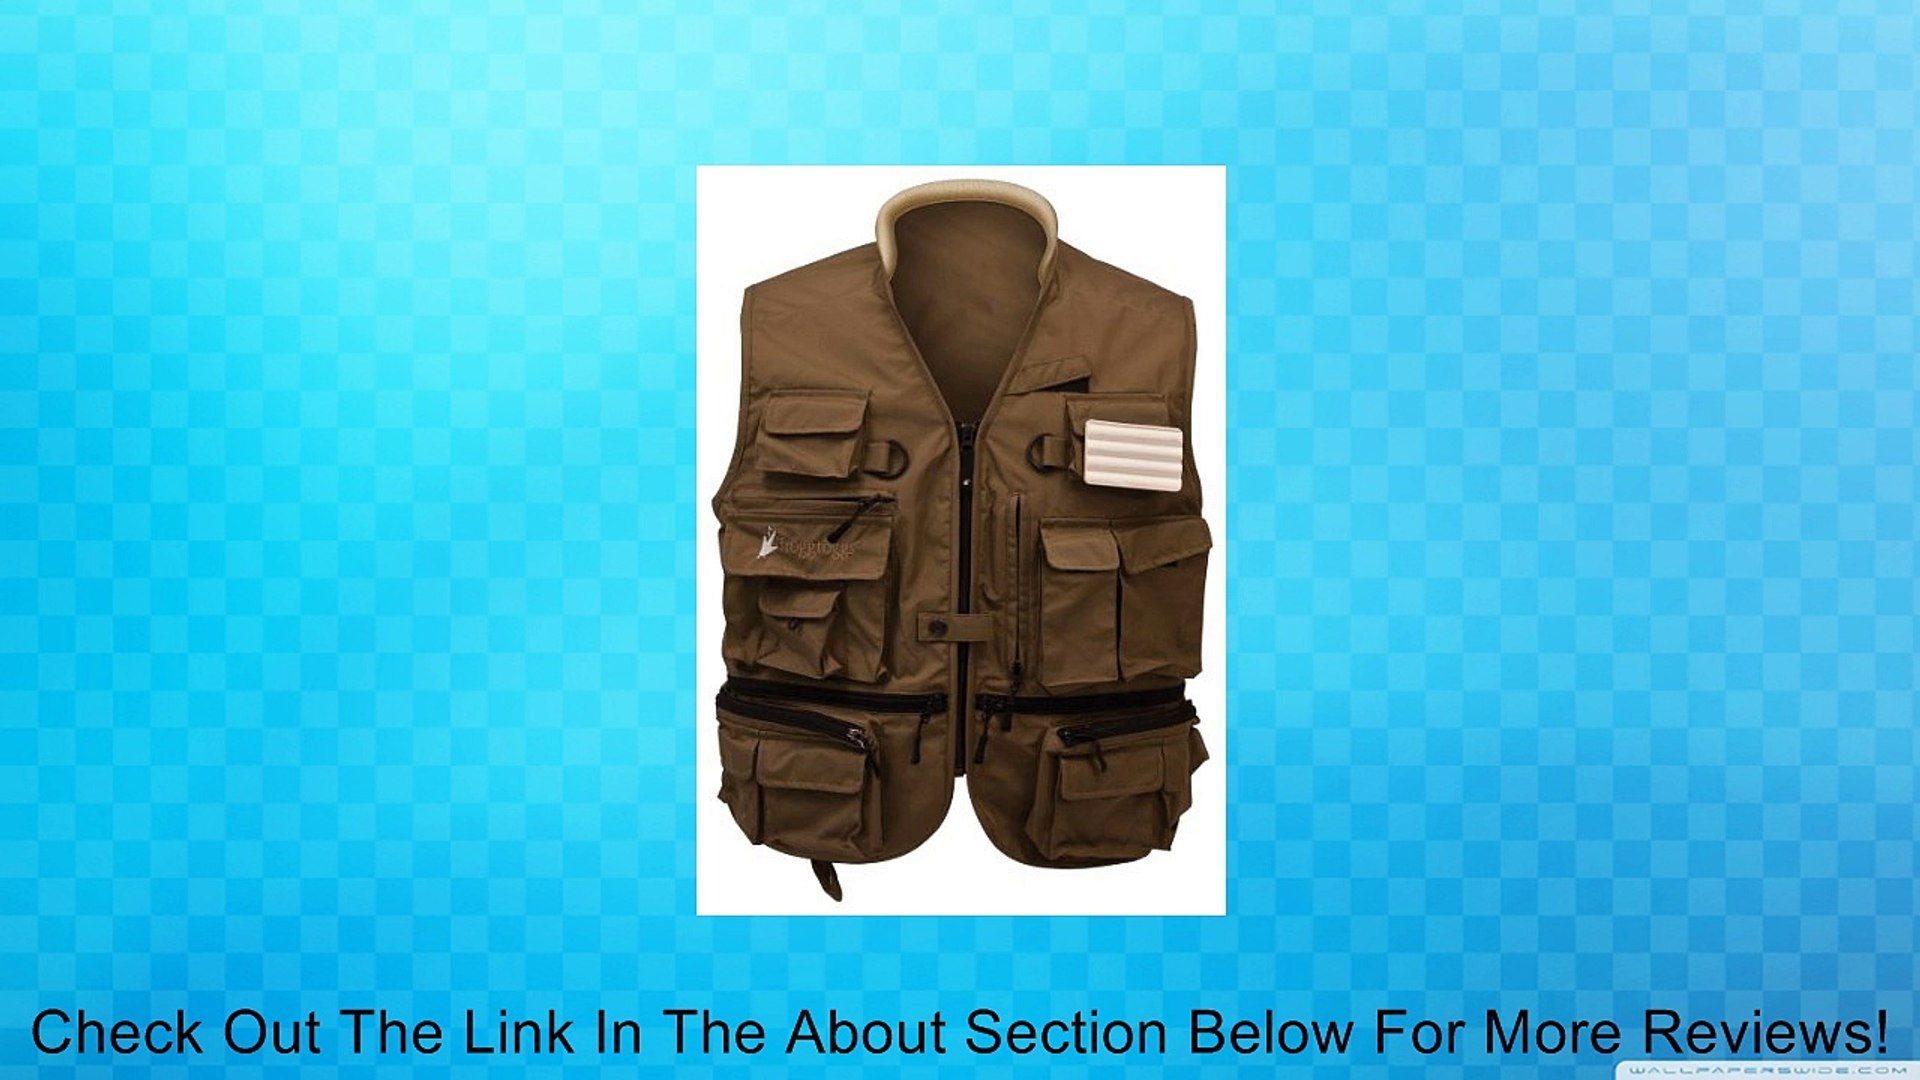 Frogg Toggs Hellbender ToadSkinz Pack Vest, XX-Large, Khaki Review